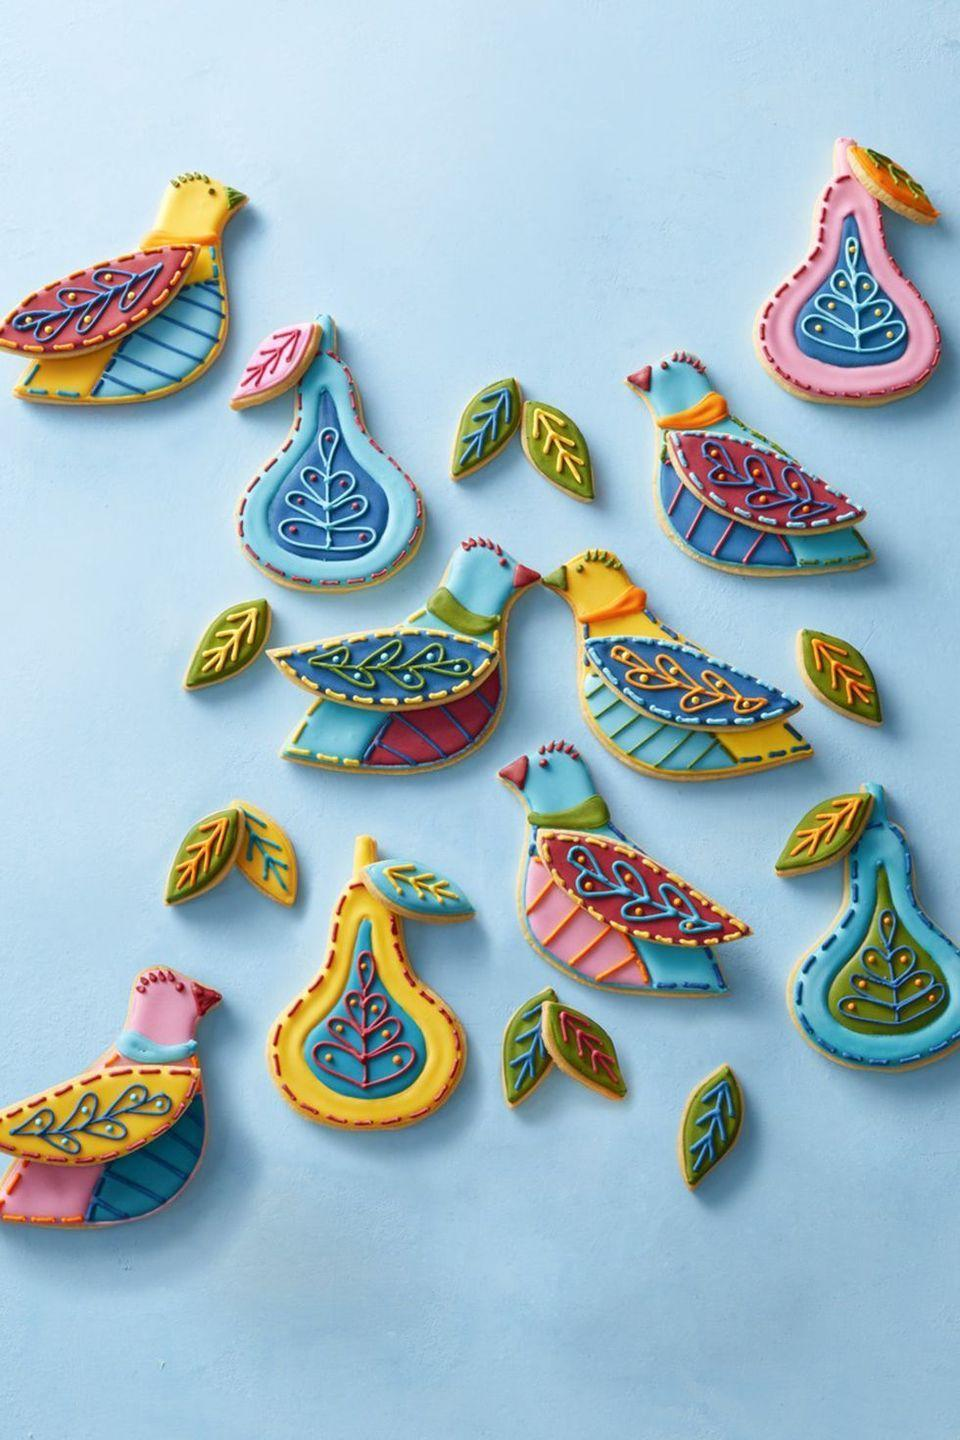 """<p>On the first (or any day) of Christmas, give your true love a plate of colorful cookies.</p><p><em><a href=""""https://www.womansday.com/food-recipes/food-drinks/a25181508/partridge-cookies-recipe/"""" rel=""""nofollow noopener"""" target=""""_blank"""" data-ylk=""""slk:Get the recipe from Woman's Day »"""" class=""""link rapid-noclick-resp"""">Get the recipe from Woman's Day »</a></em></p>"""